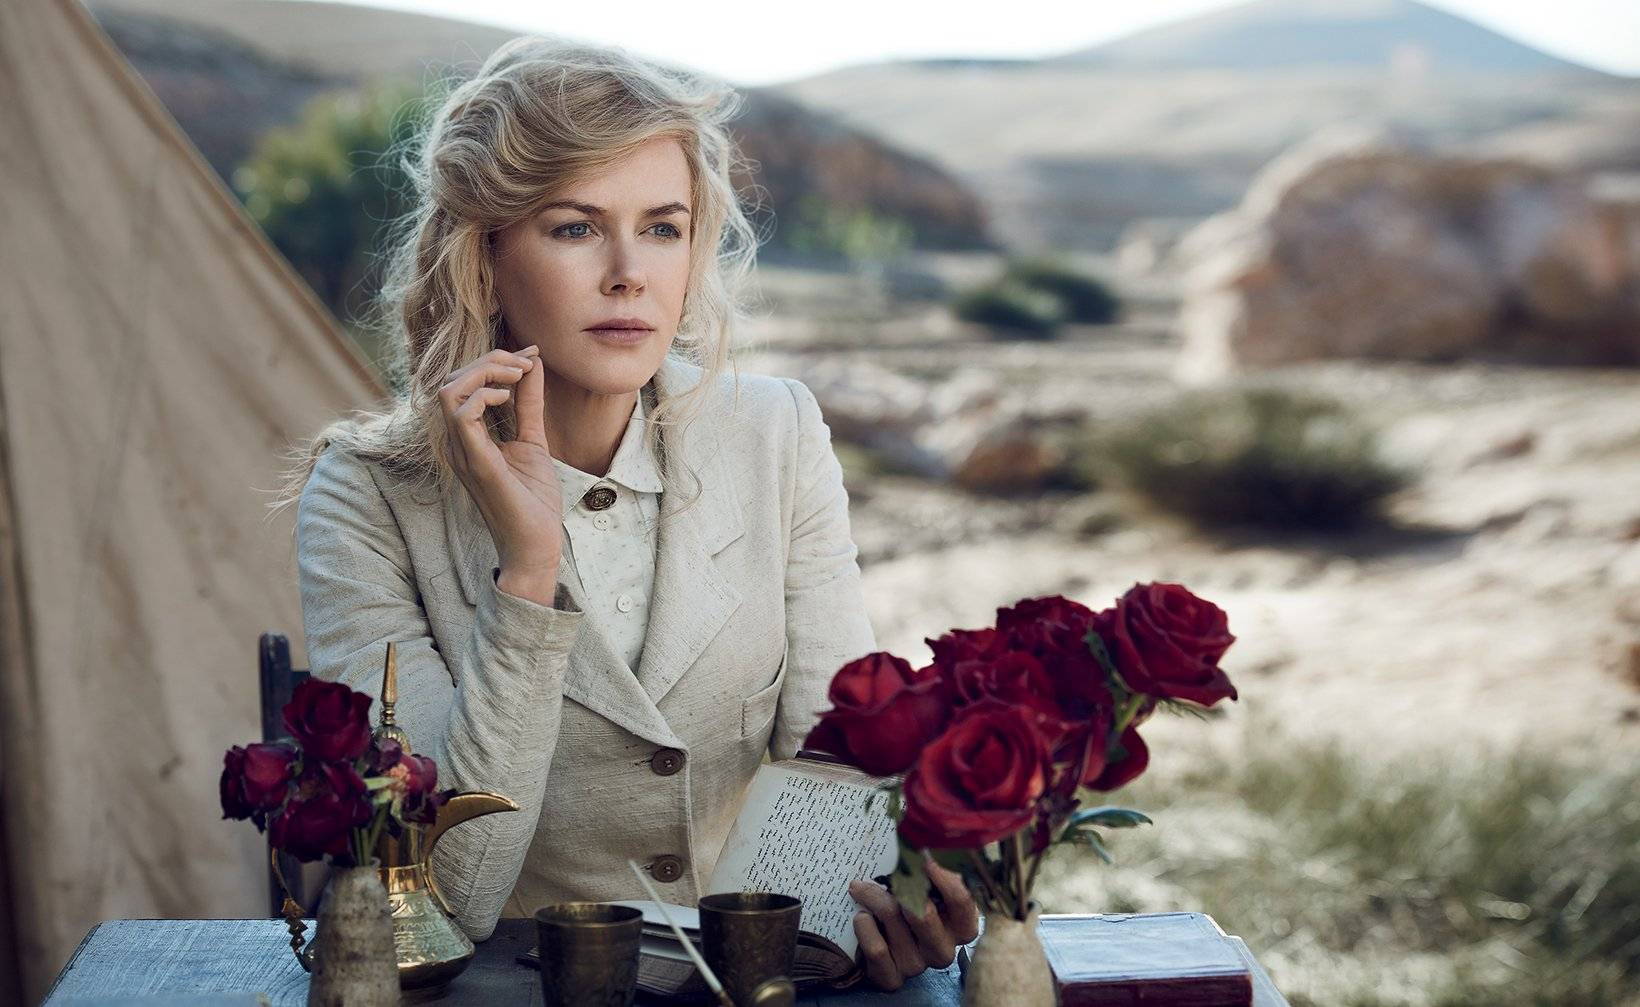 nicole-kidman-by-peter-lindbergh-for-vogue-us-august-2015-3